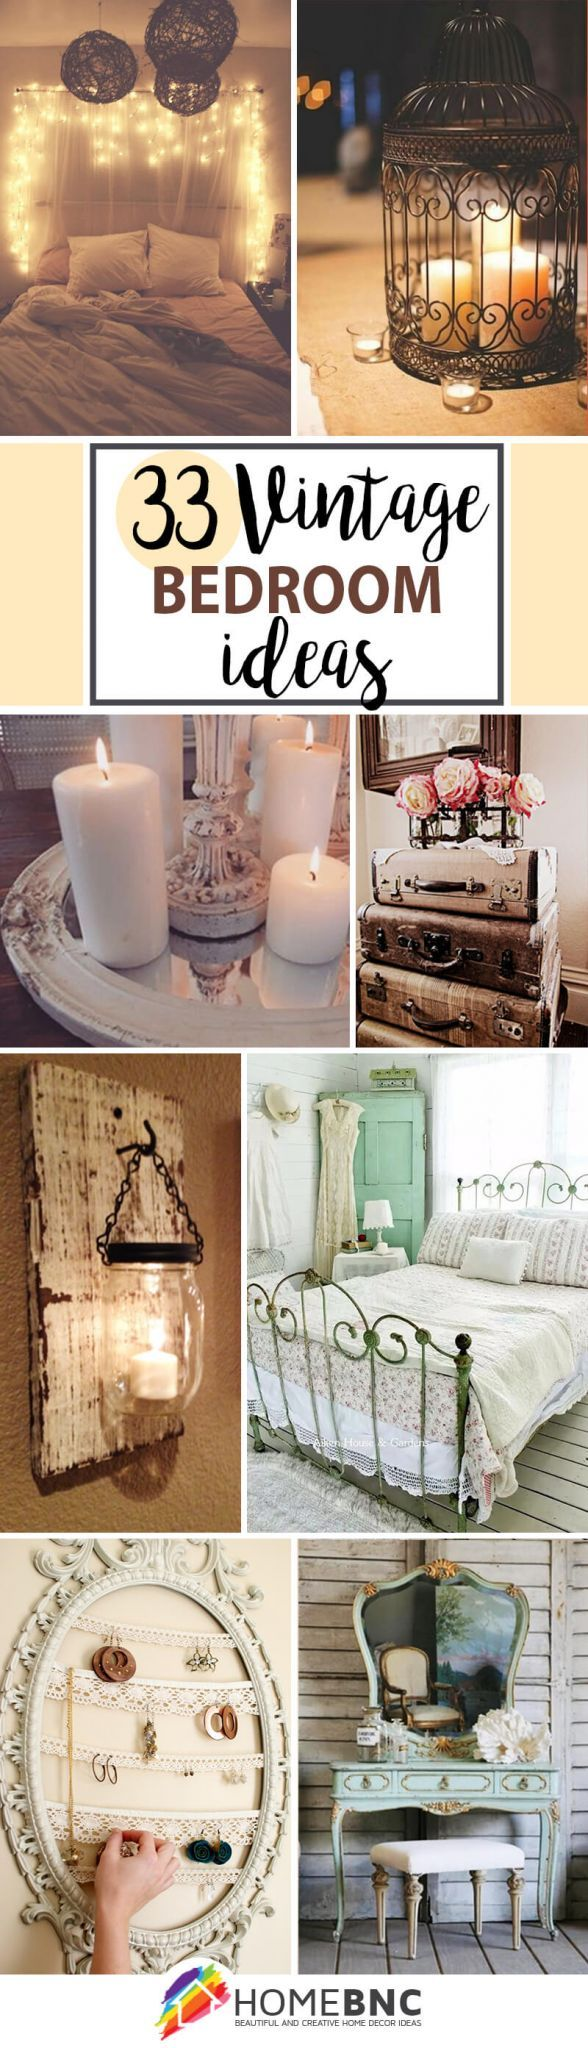 33 vintage bedroom decor ideas to turn your room into a paradise - Bedroom Vintage Ideas